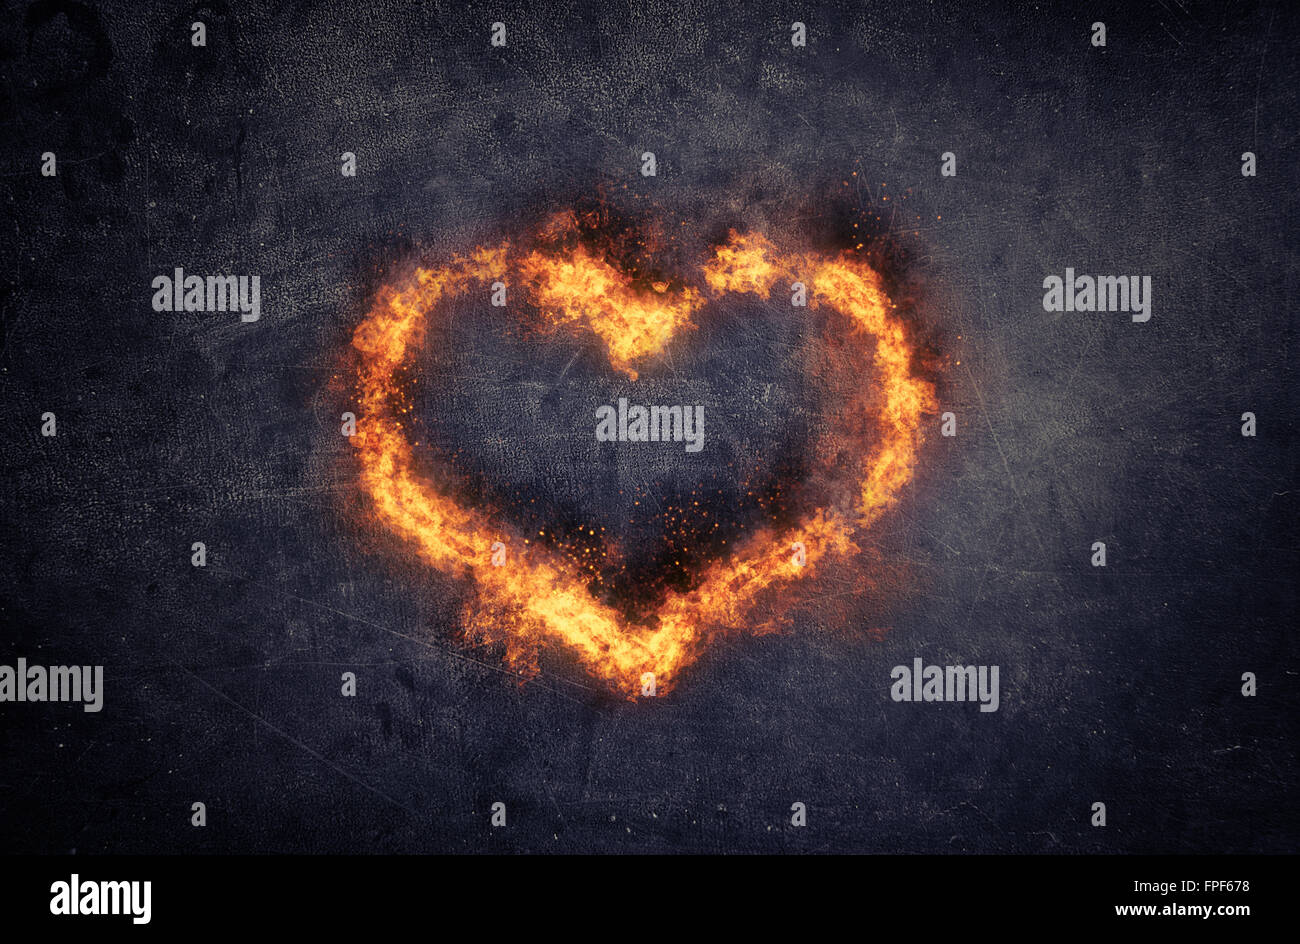 Burning heart - heart-shaped ring of fire and orange flames over a textured dark background with copyspace conceptual - Stock Image